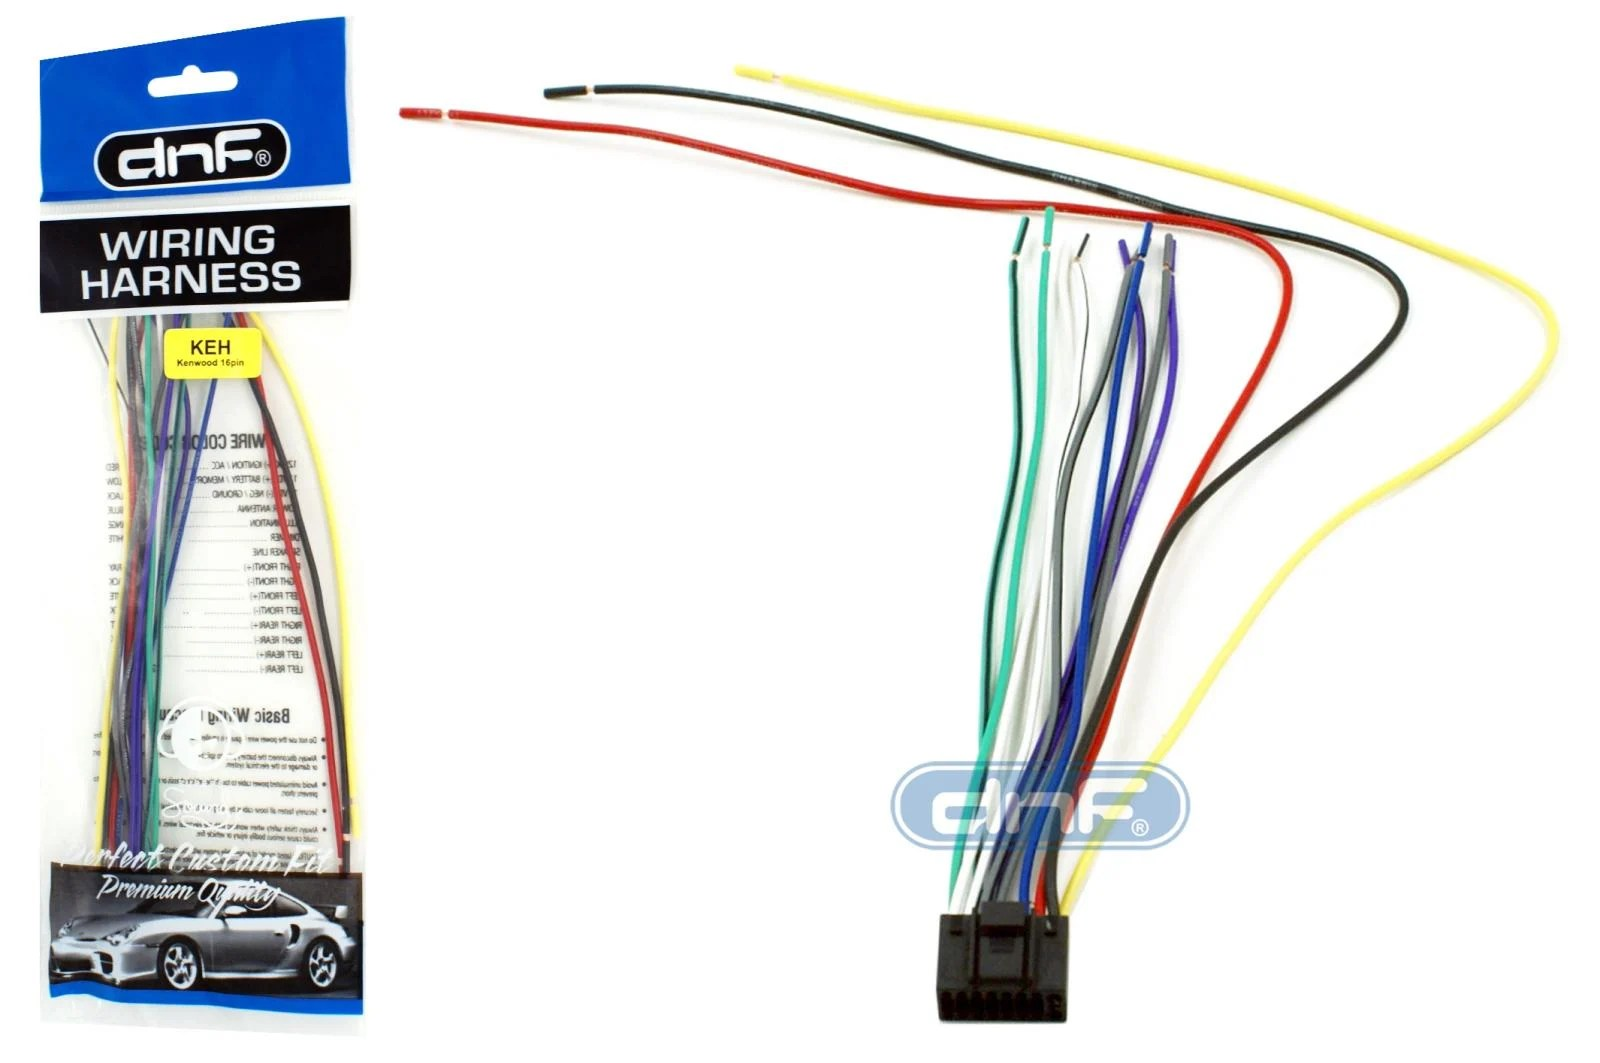 hight resolution of wire harness further kenwood kdc mp332 wiring diagram besides rh 5 17 54 aspire atlantis de kenwood wiring diagram colors kenwood wiring diagram colors